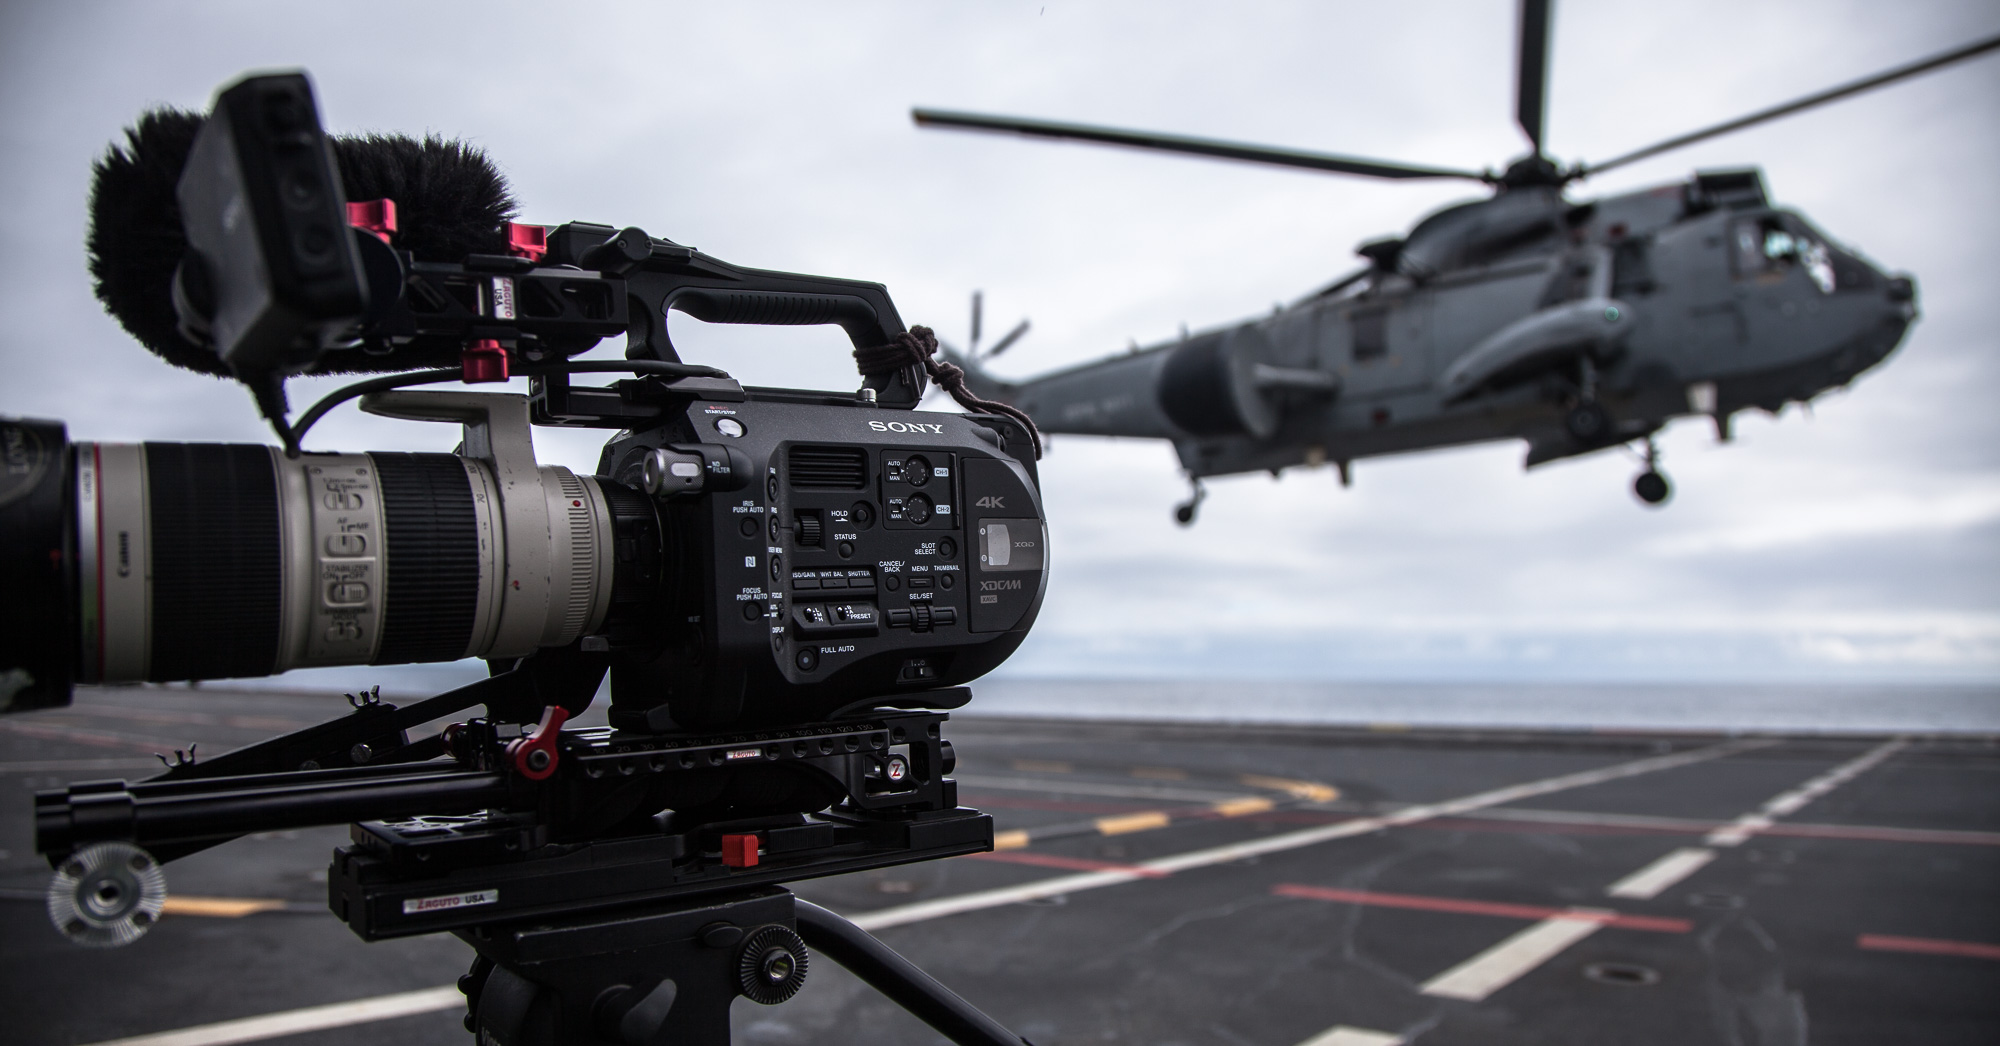 Video production company - Filming on HMS Ocean